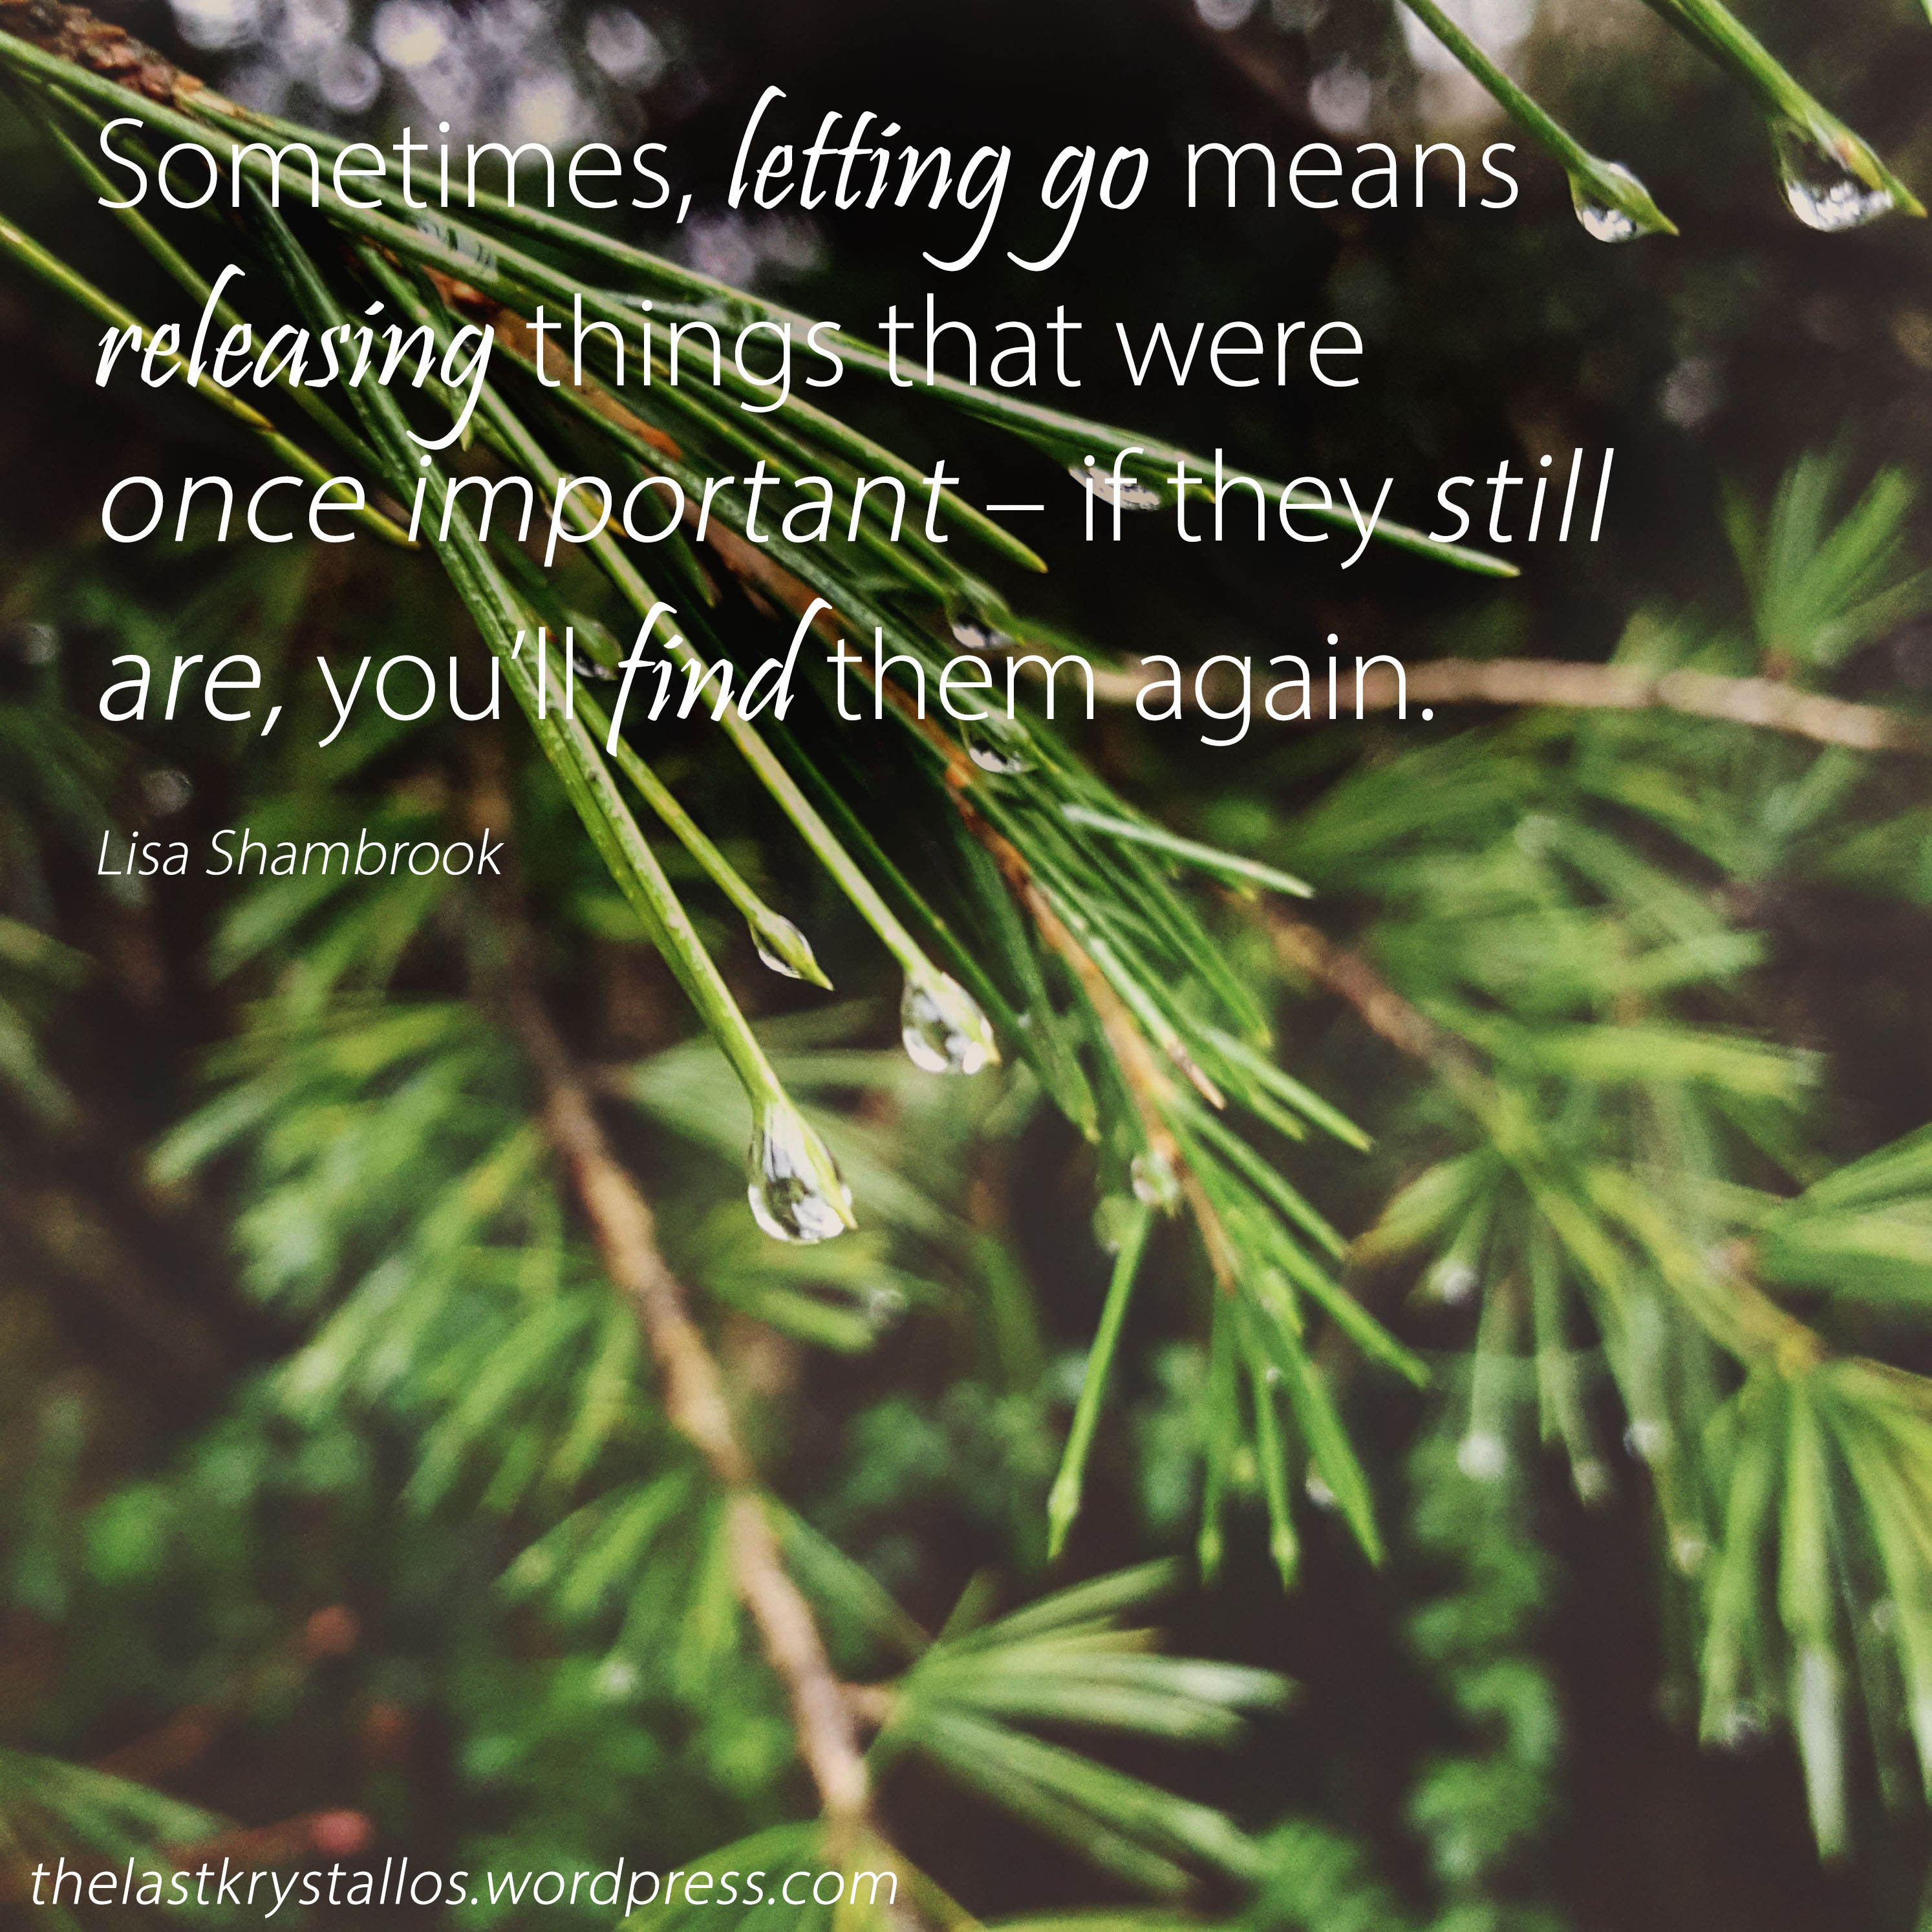 Sometimes, letting go means releasing things that were once important – if they still are, you_ll find them again - Lisa Shambrook - The Last Krystallos